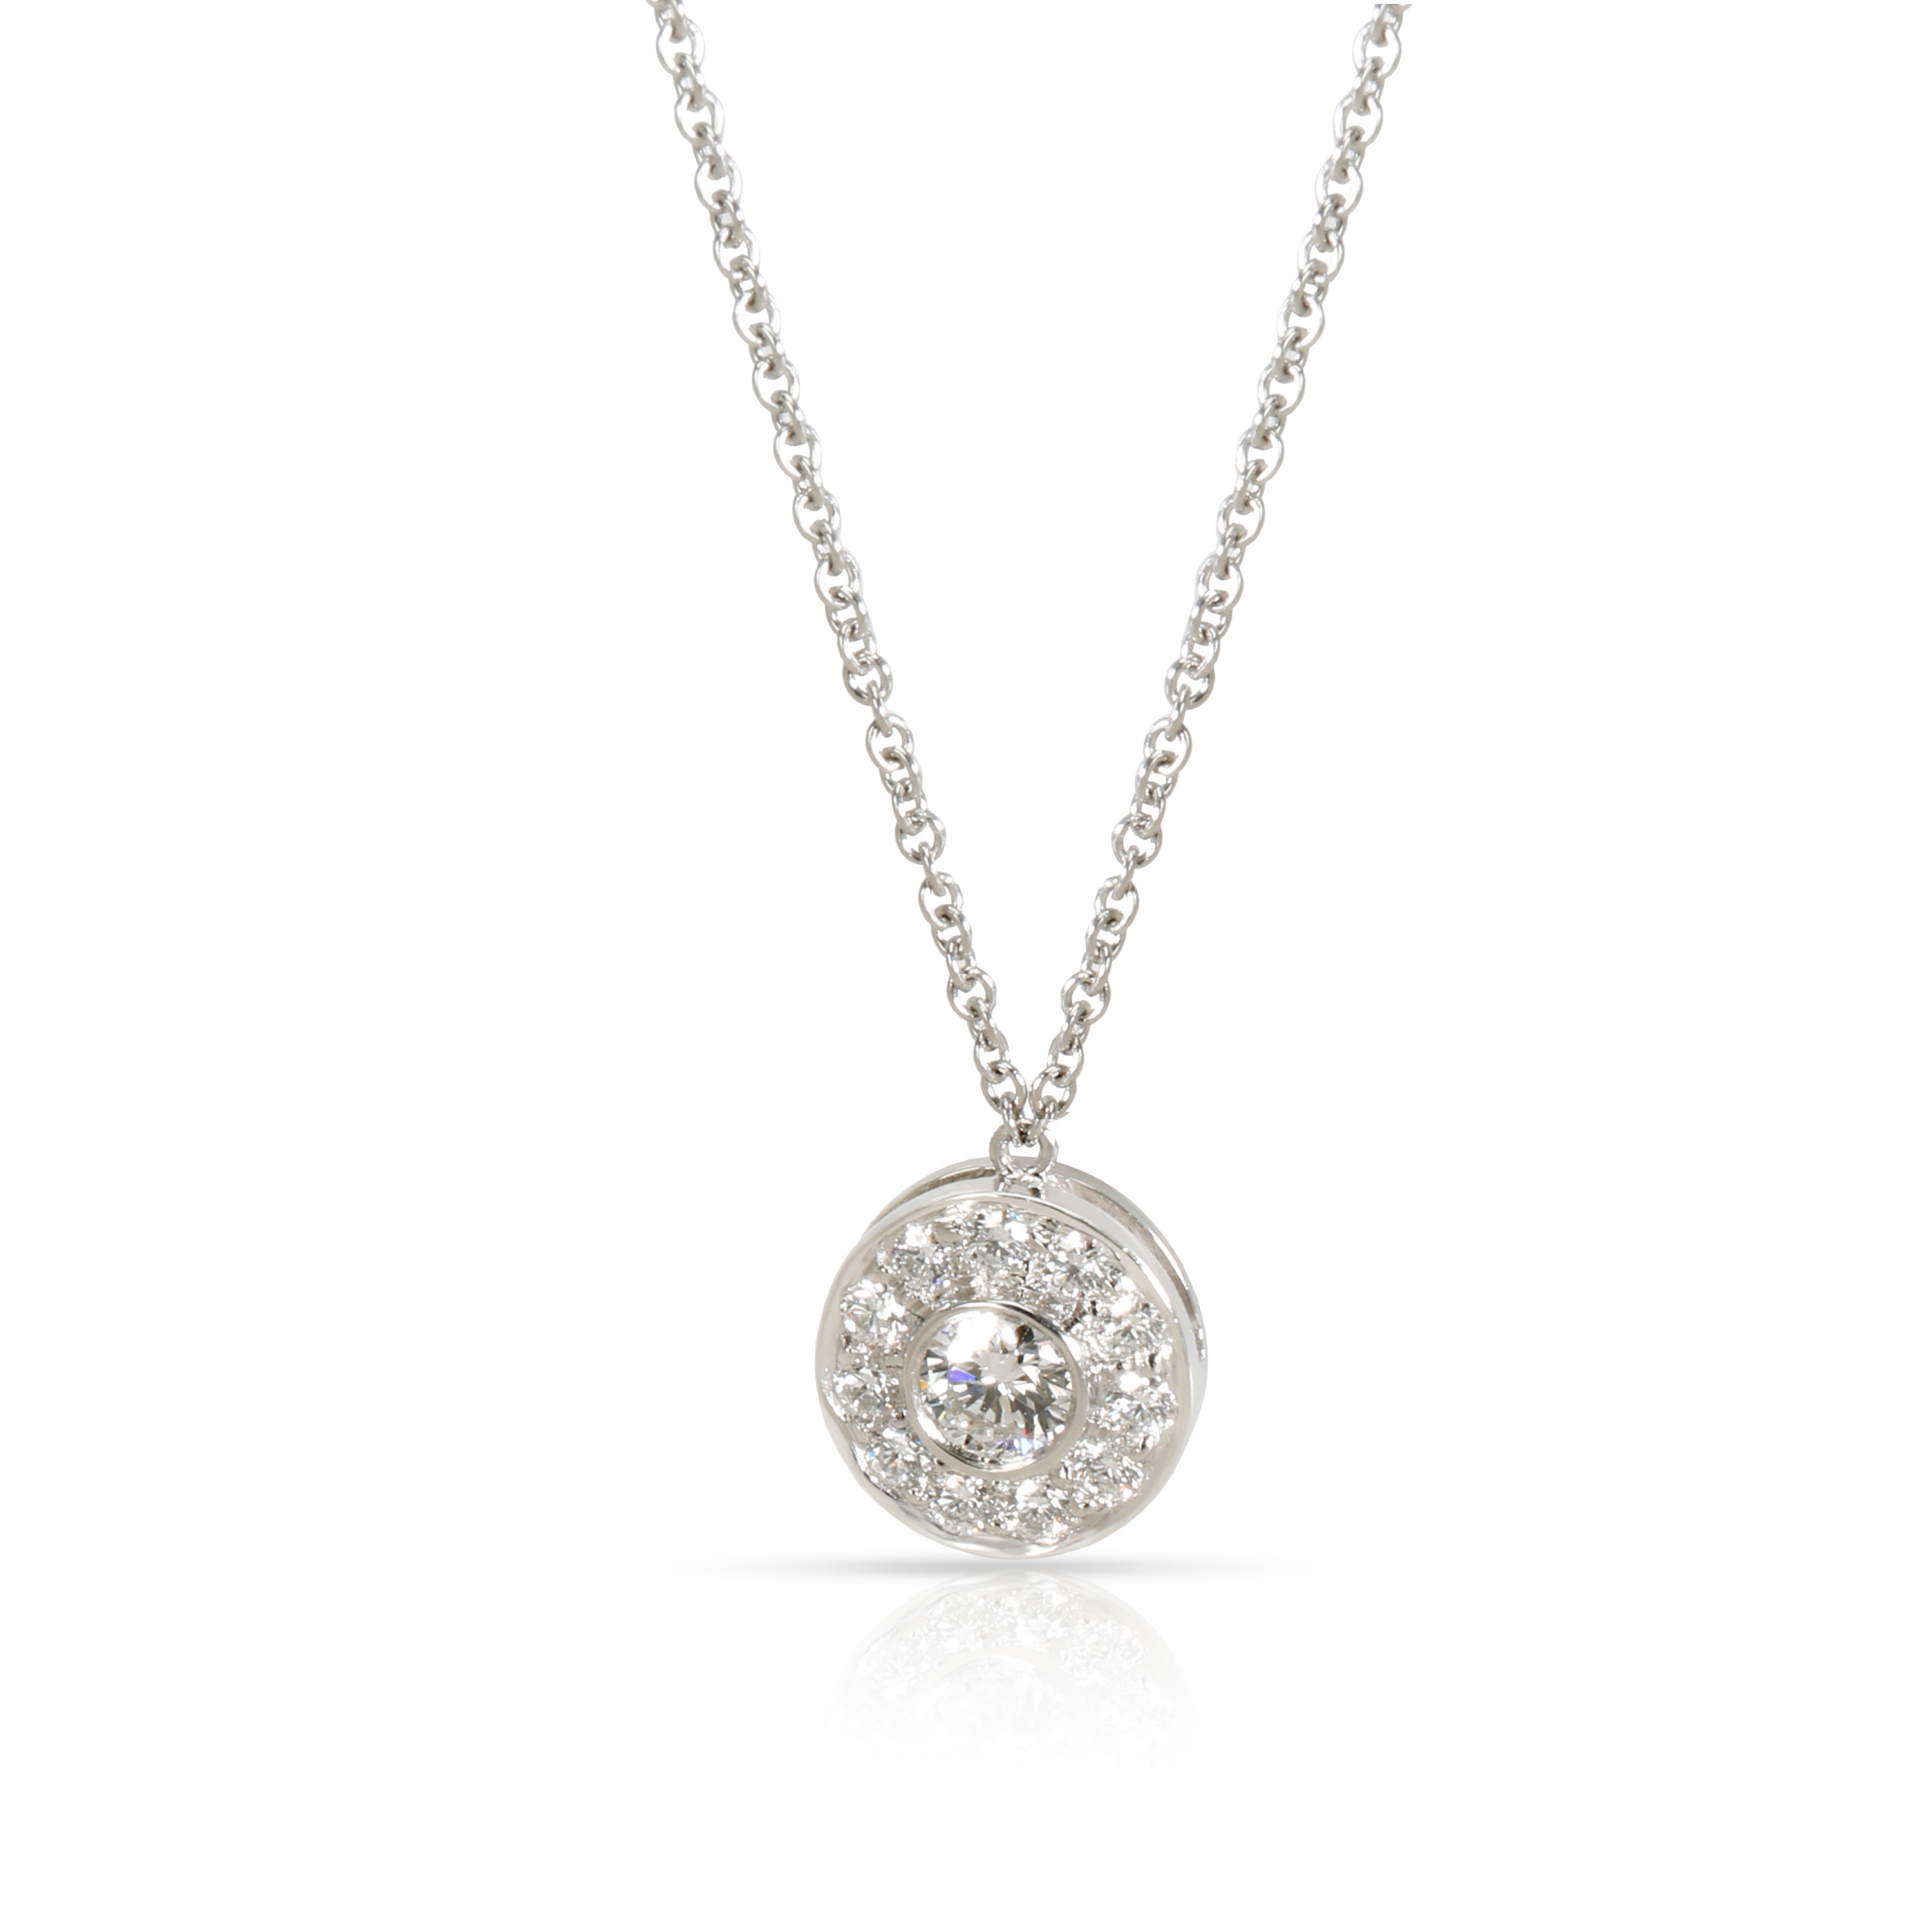 d1f4670fe5883 Details about Tiffany & Co. Circlet Diamond Pendant in Platinum 0.3 CTW